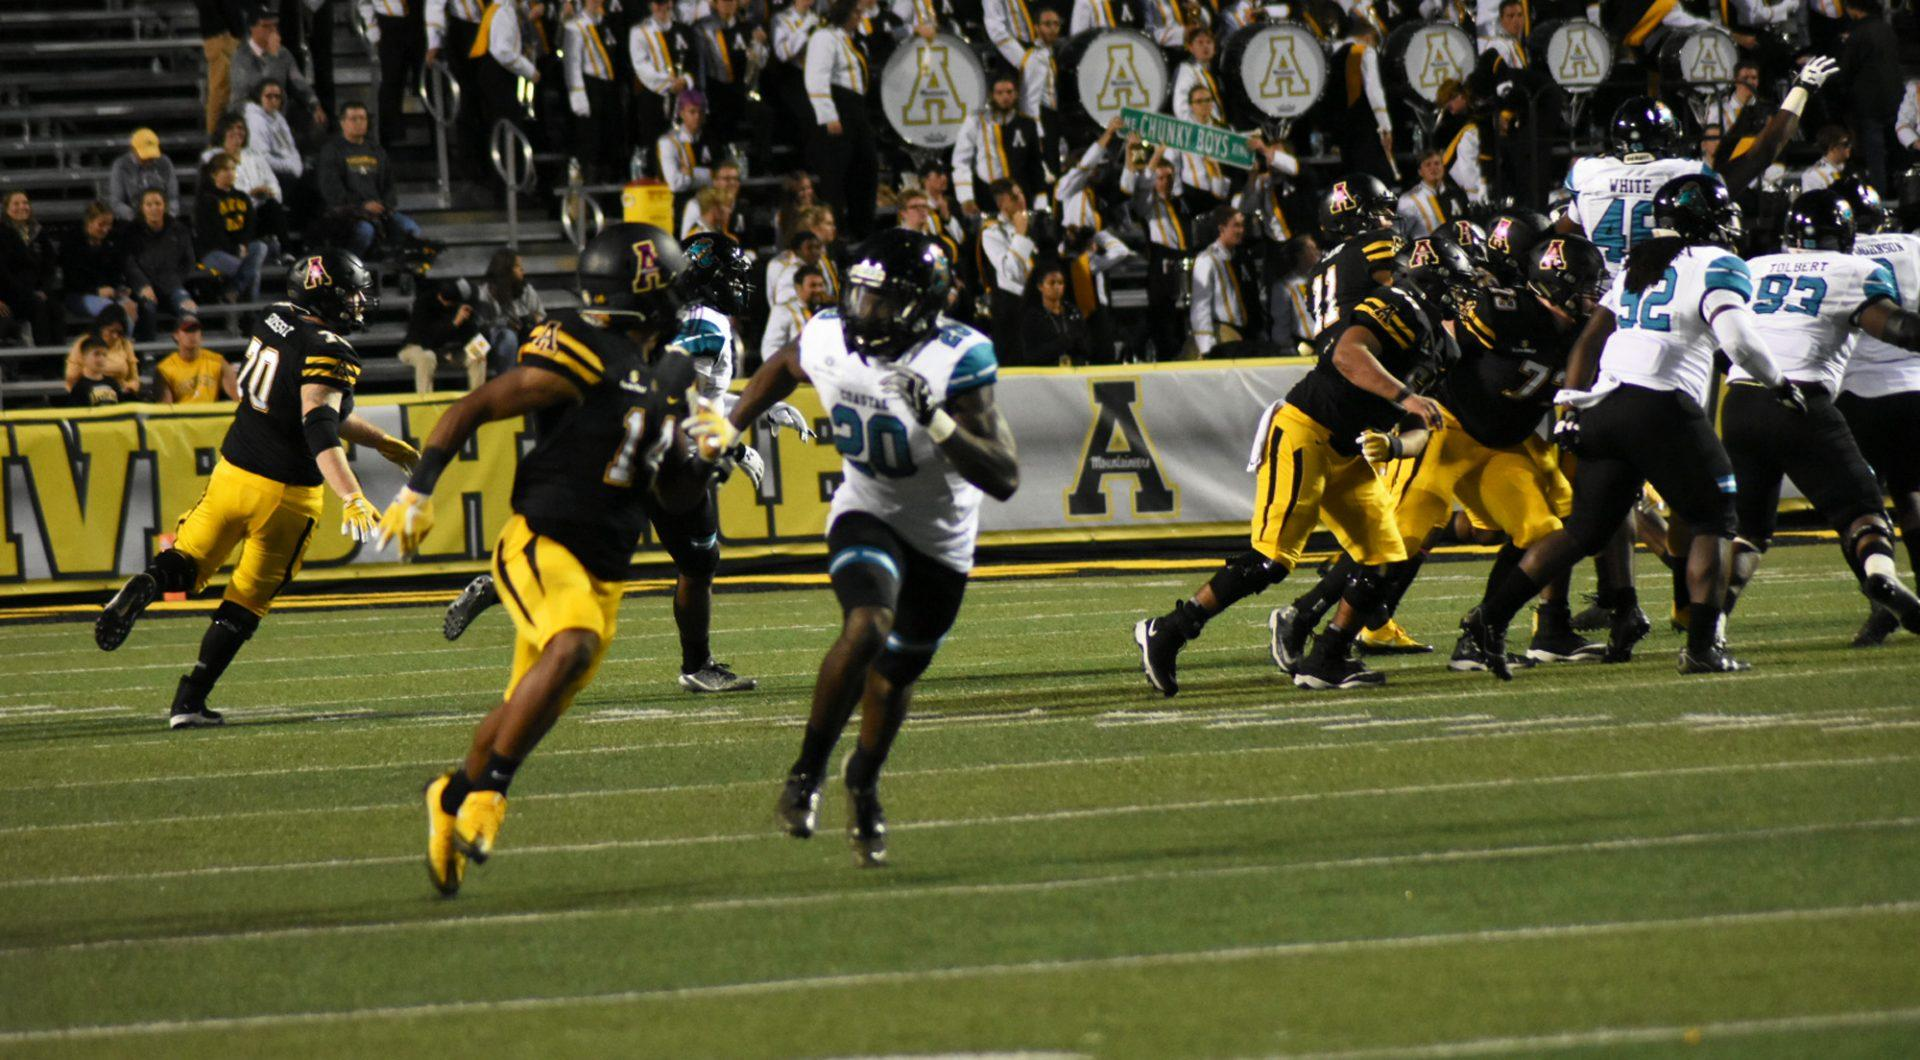 Appalachian+State%27s+offense+during+a+pass+play+against+Coastal+Carolina+at+Kidd+Brewer+Stadium.+Mountaineers+win+37+to+29.+